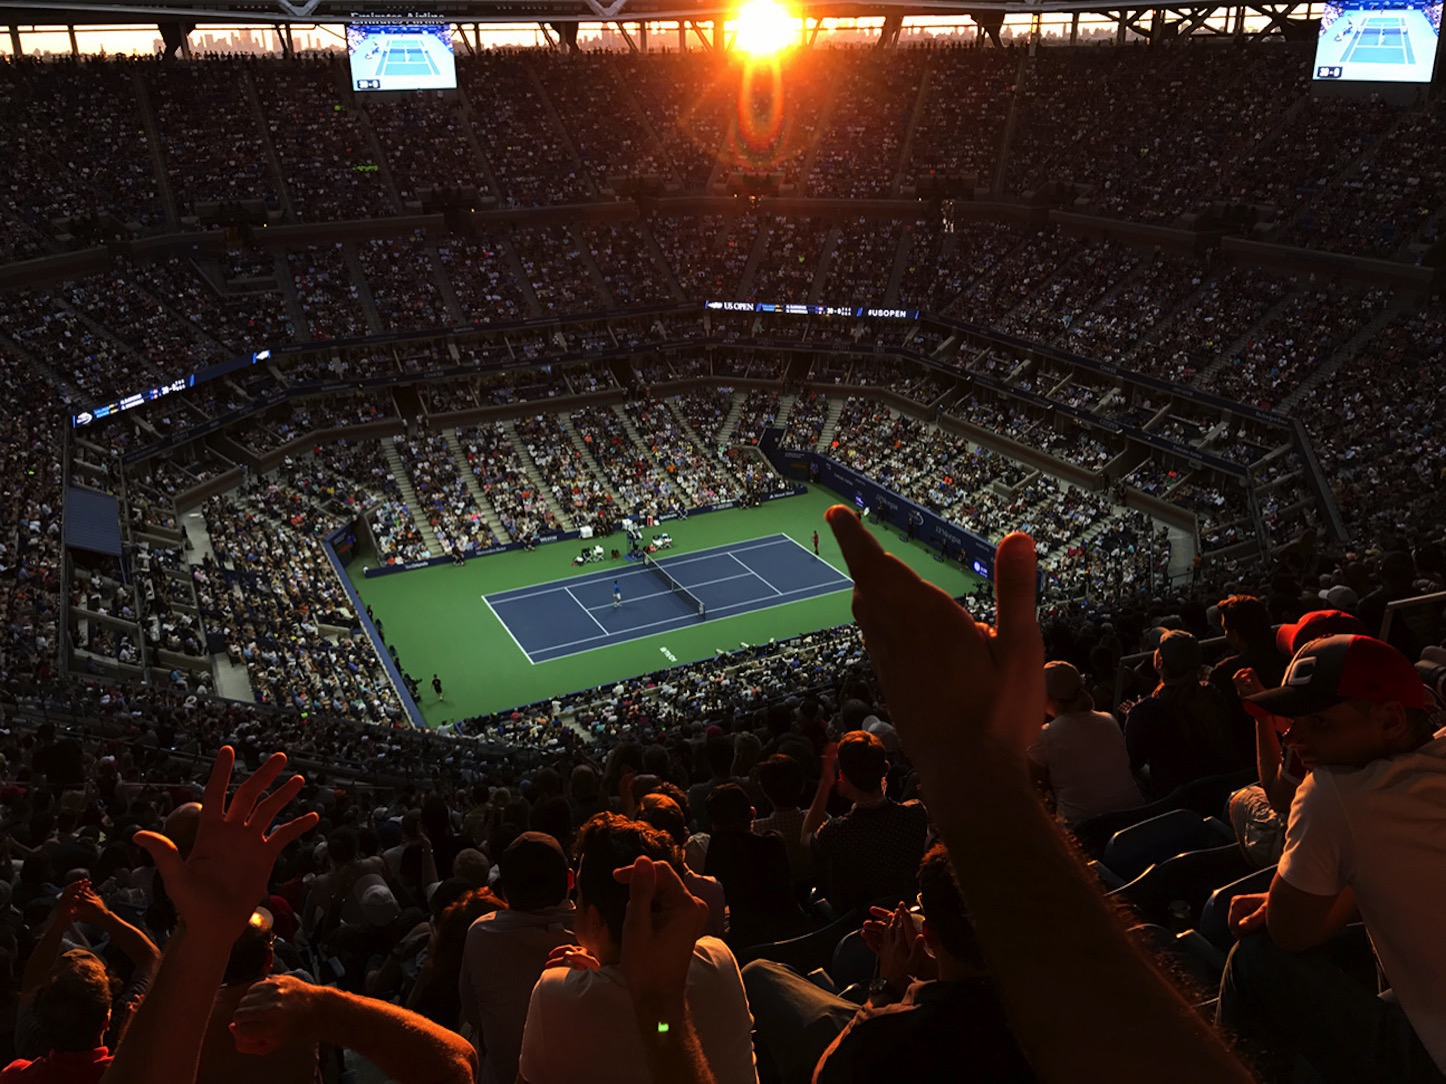 Usopen iphone 034